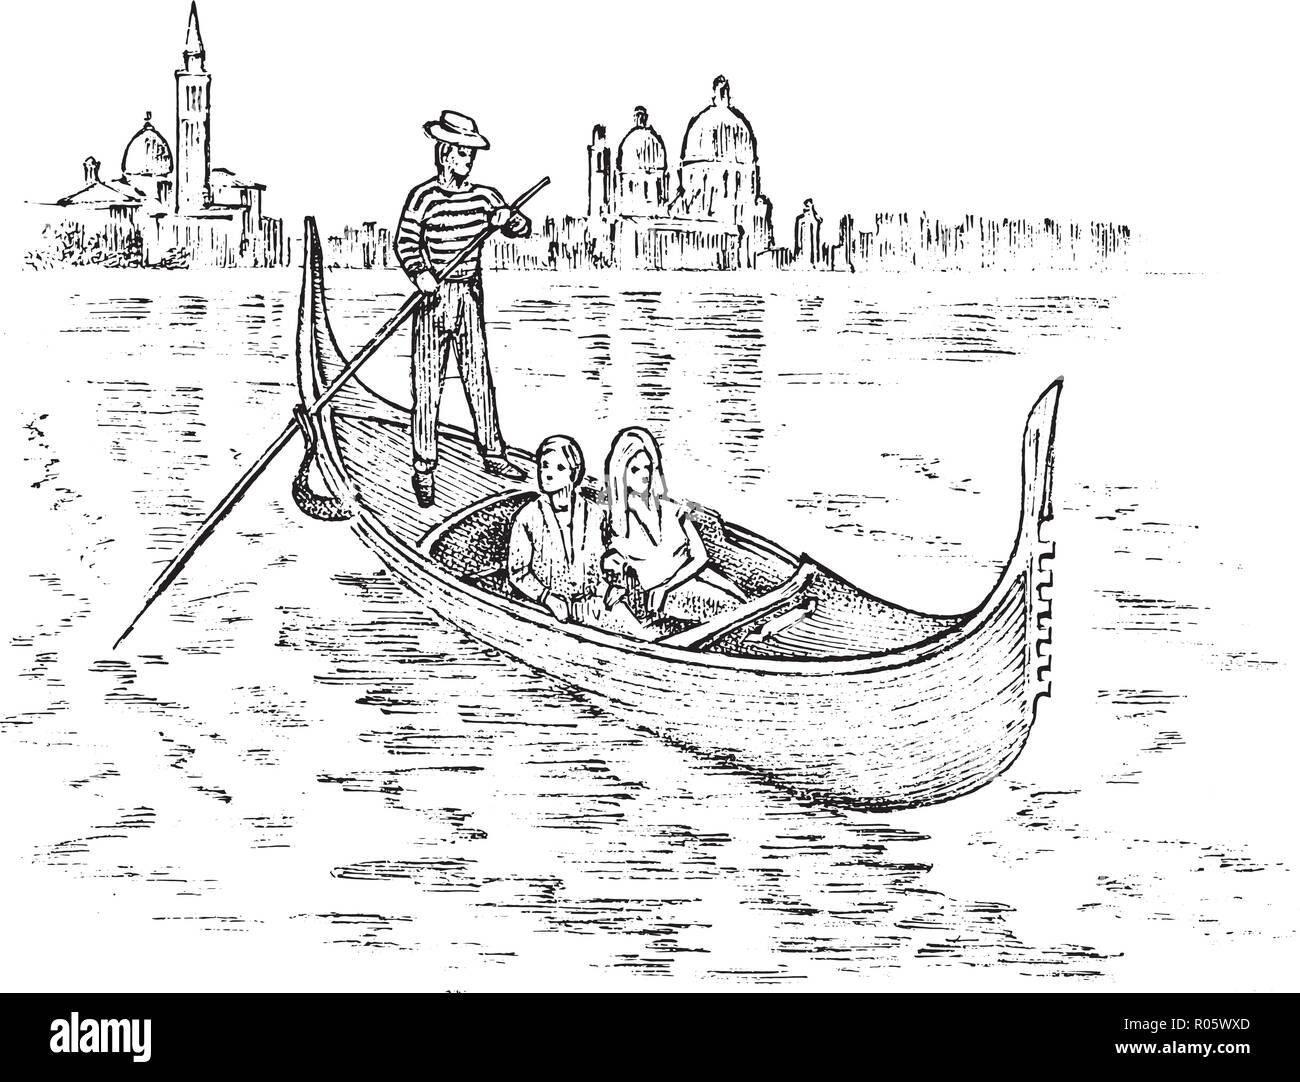 landscape in European. Characters in the gondola. Engraved hand drawn in old sketch and vintage style. Italian historical architecture with buildings, perspective view. Travel postcard. - Stock Image